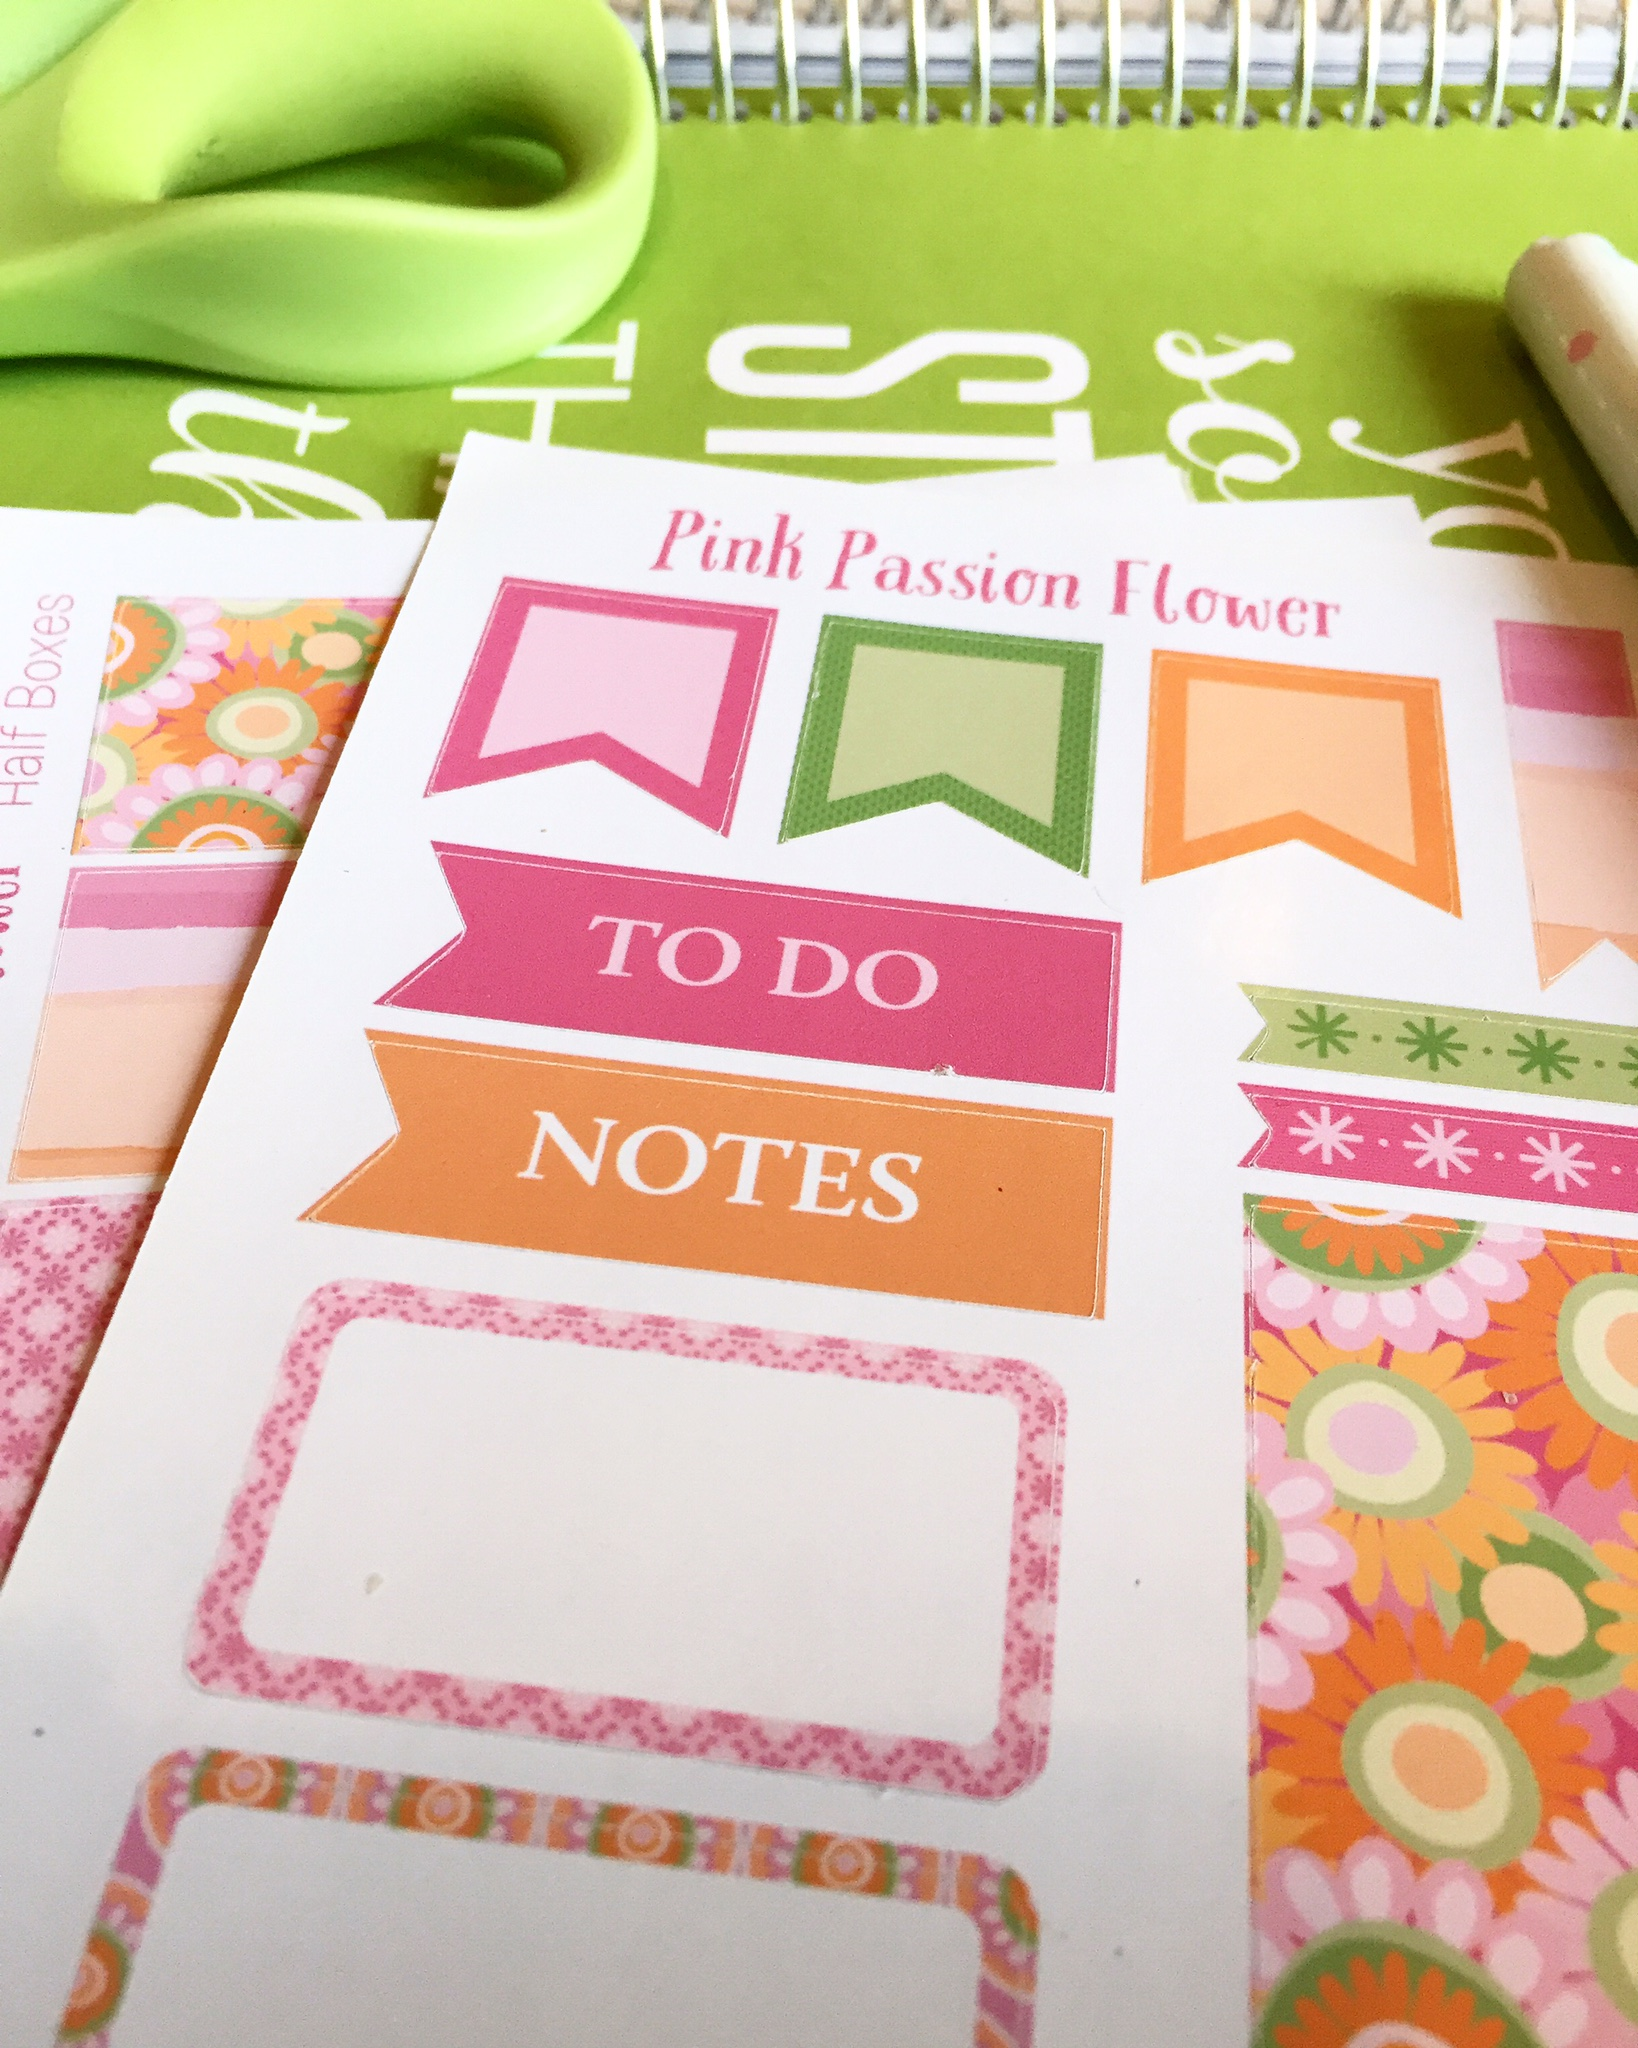 Pink Passion Flower Stickers